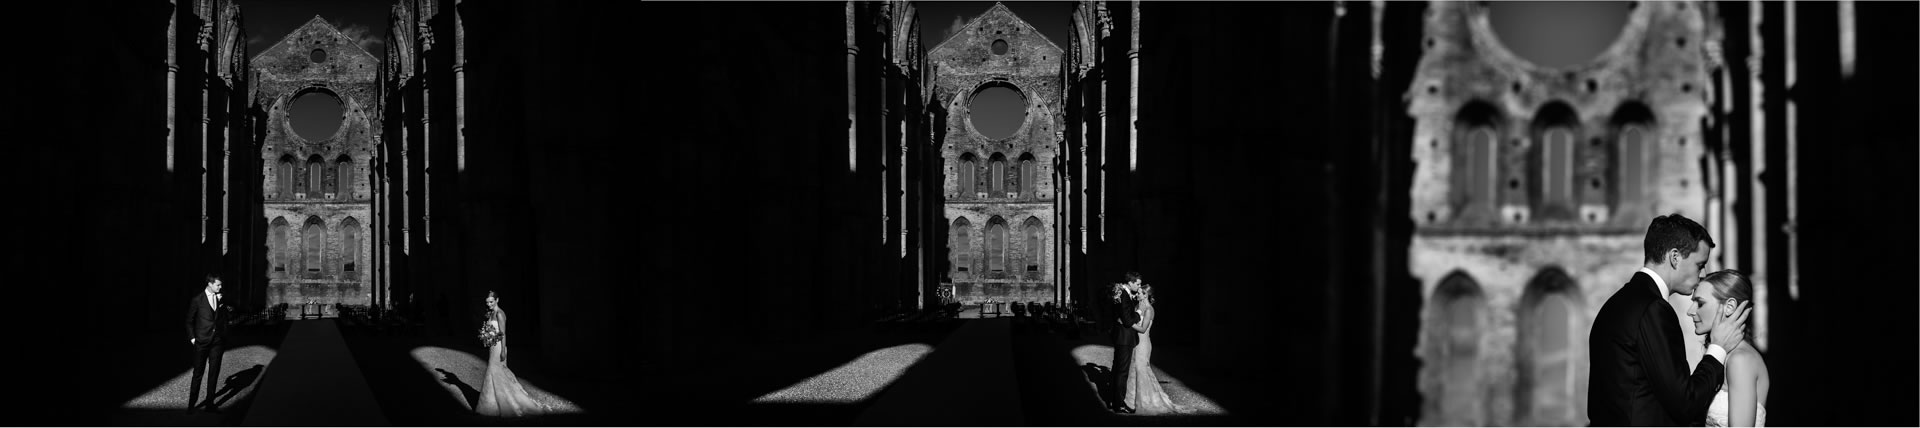 - 31 :: Wedding at Borgo Santo Pietro // San Galgano // WPPI 2018 // You look like a movie :: Luxury wedding photography - 30 ::  - 31